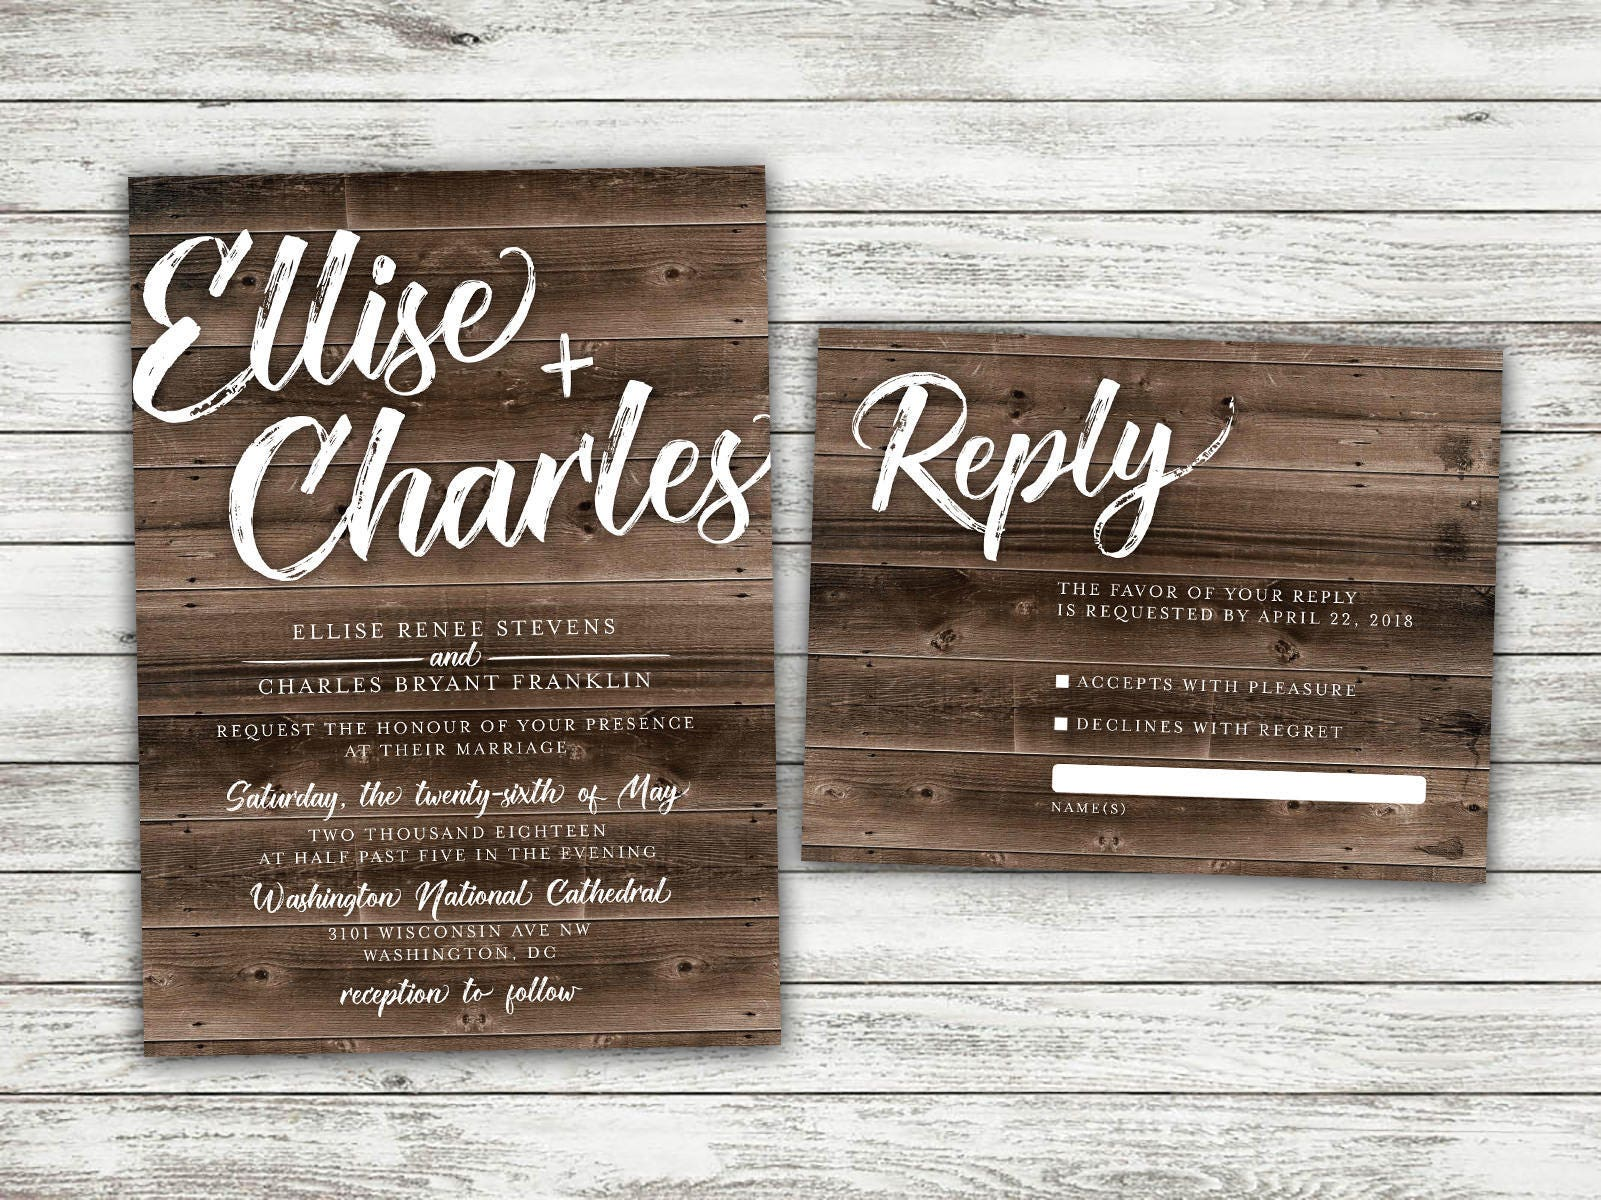 Rustic Country Wedding Invitations Set Printed   Cheap, Burlap, Kraft,  Wood, Affordable, Woodsy, Lights, Outside, Elegant, Summer, Southern